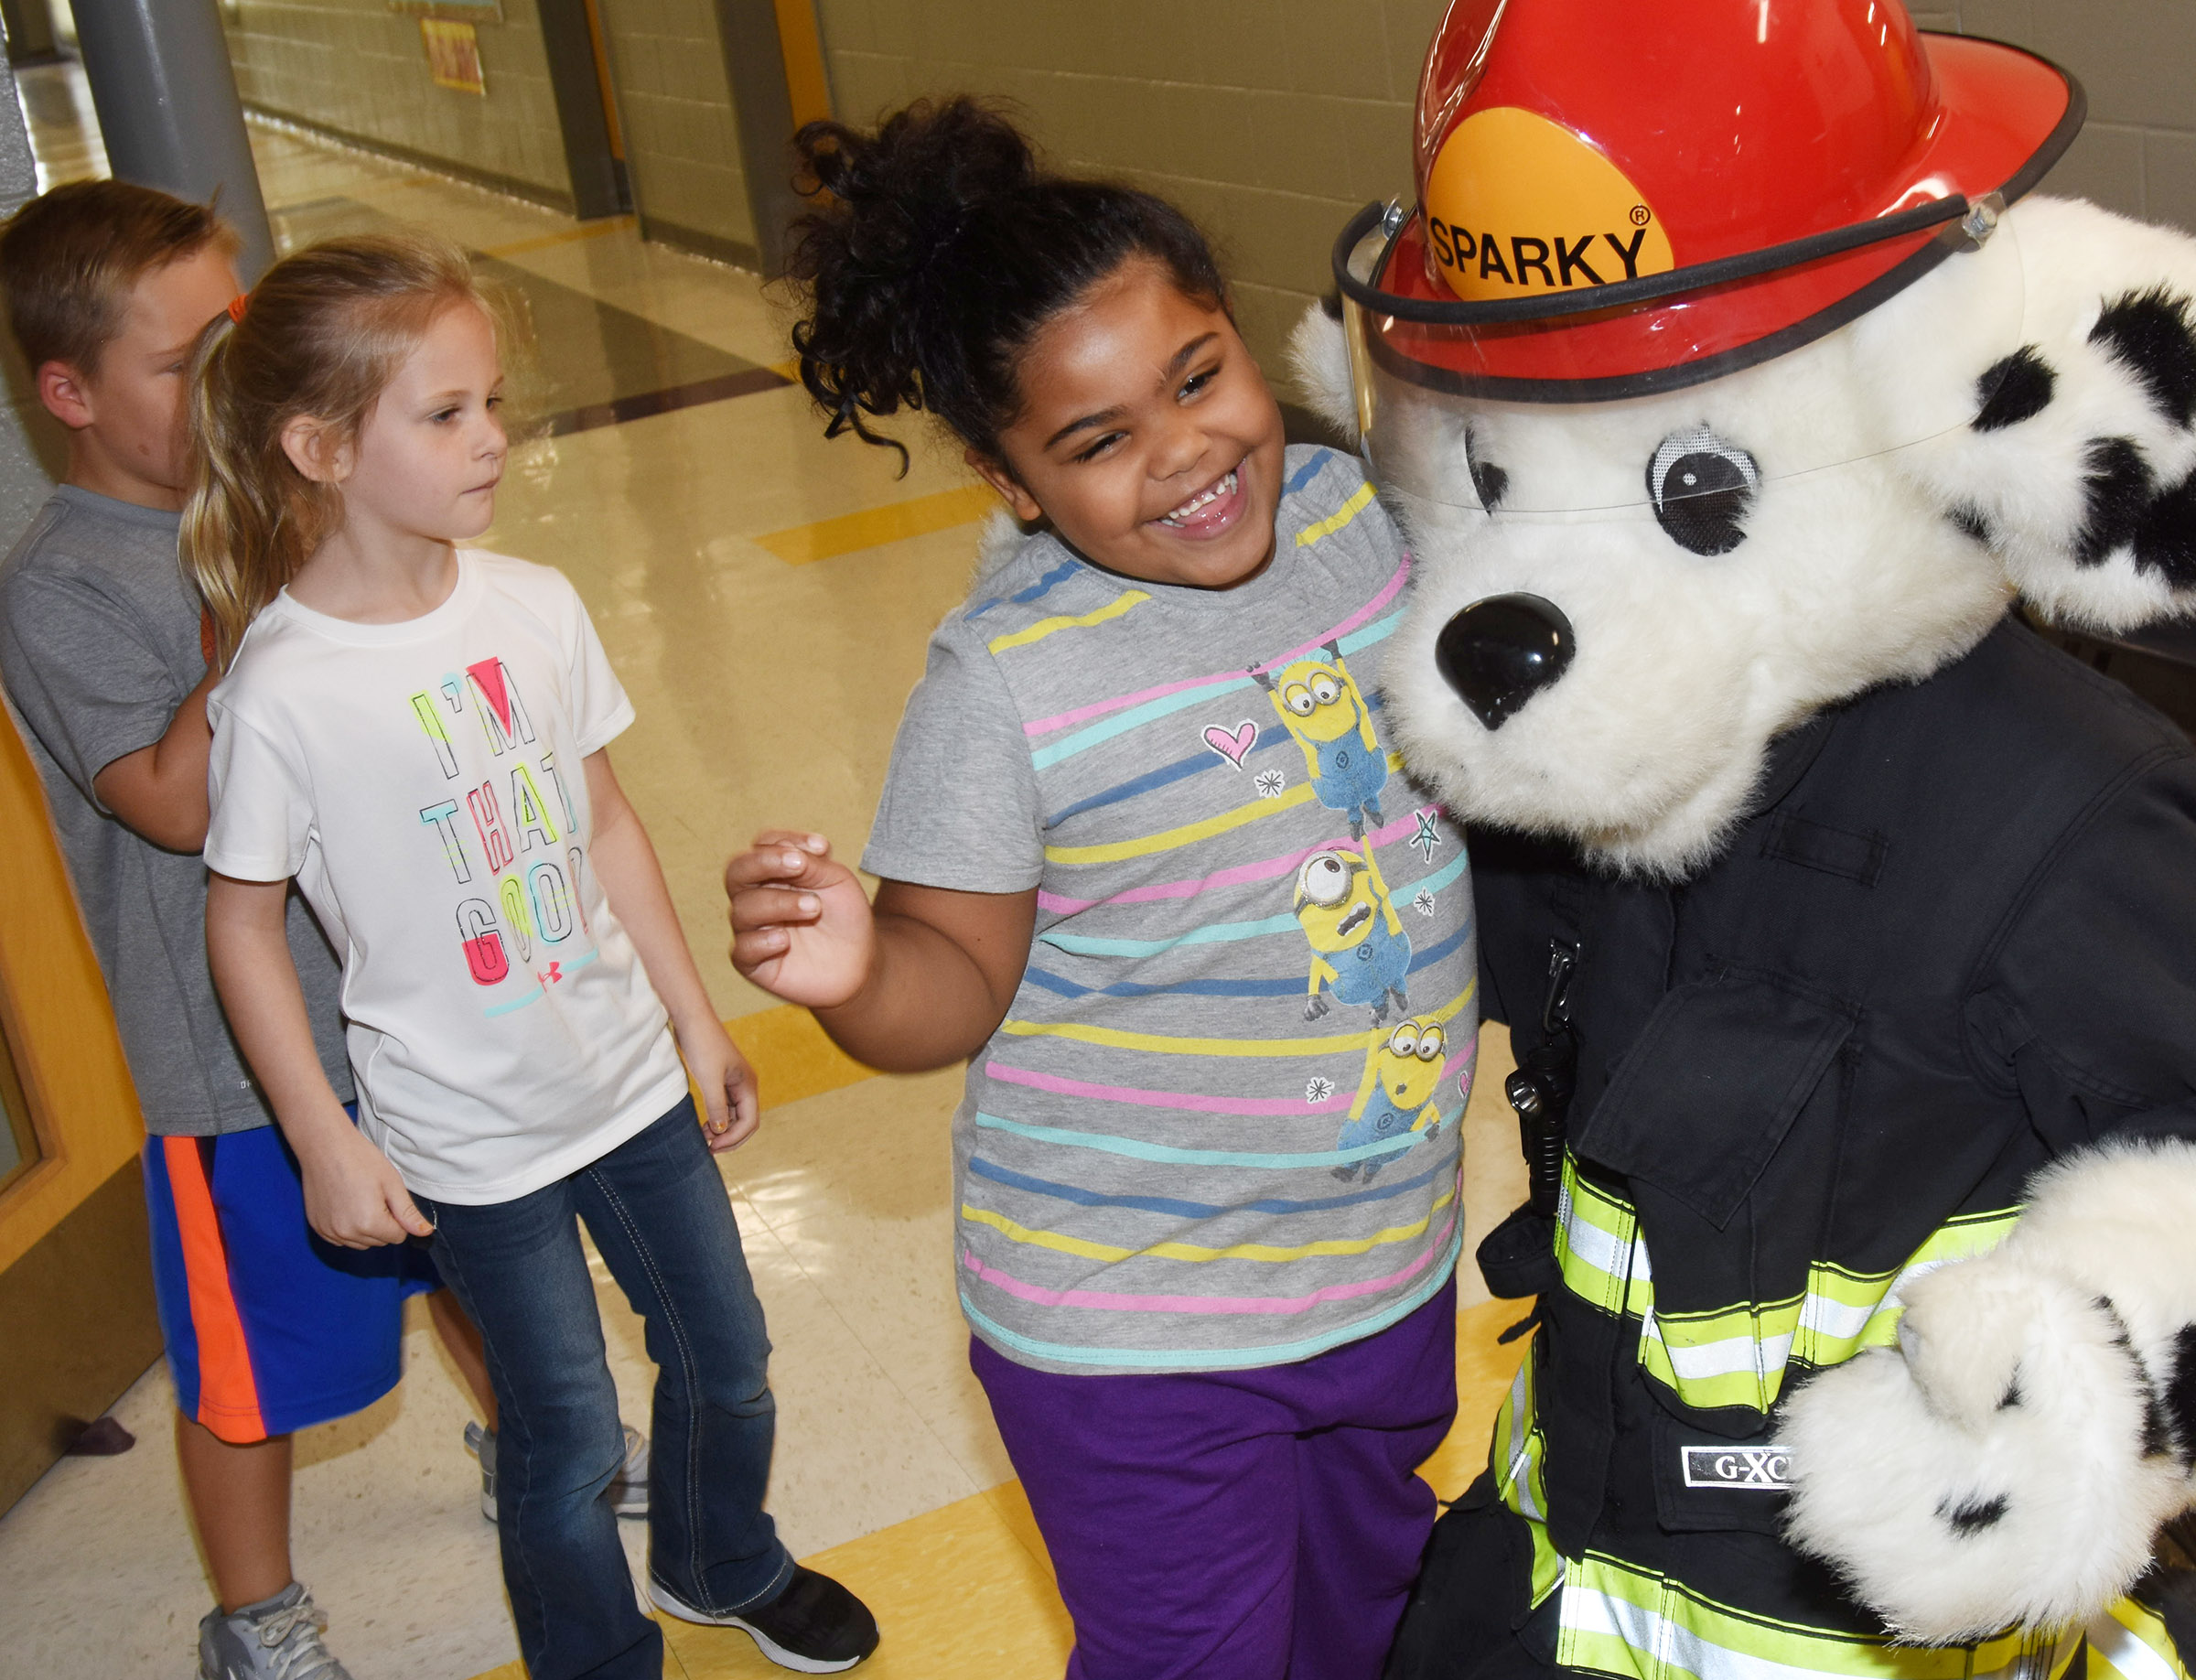 Sparky the fire dog hugs CES first-grader Linnly Adams.